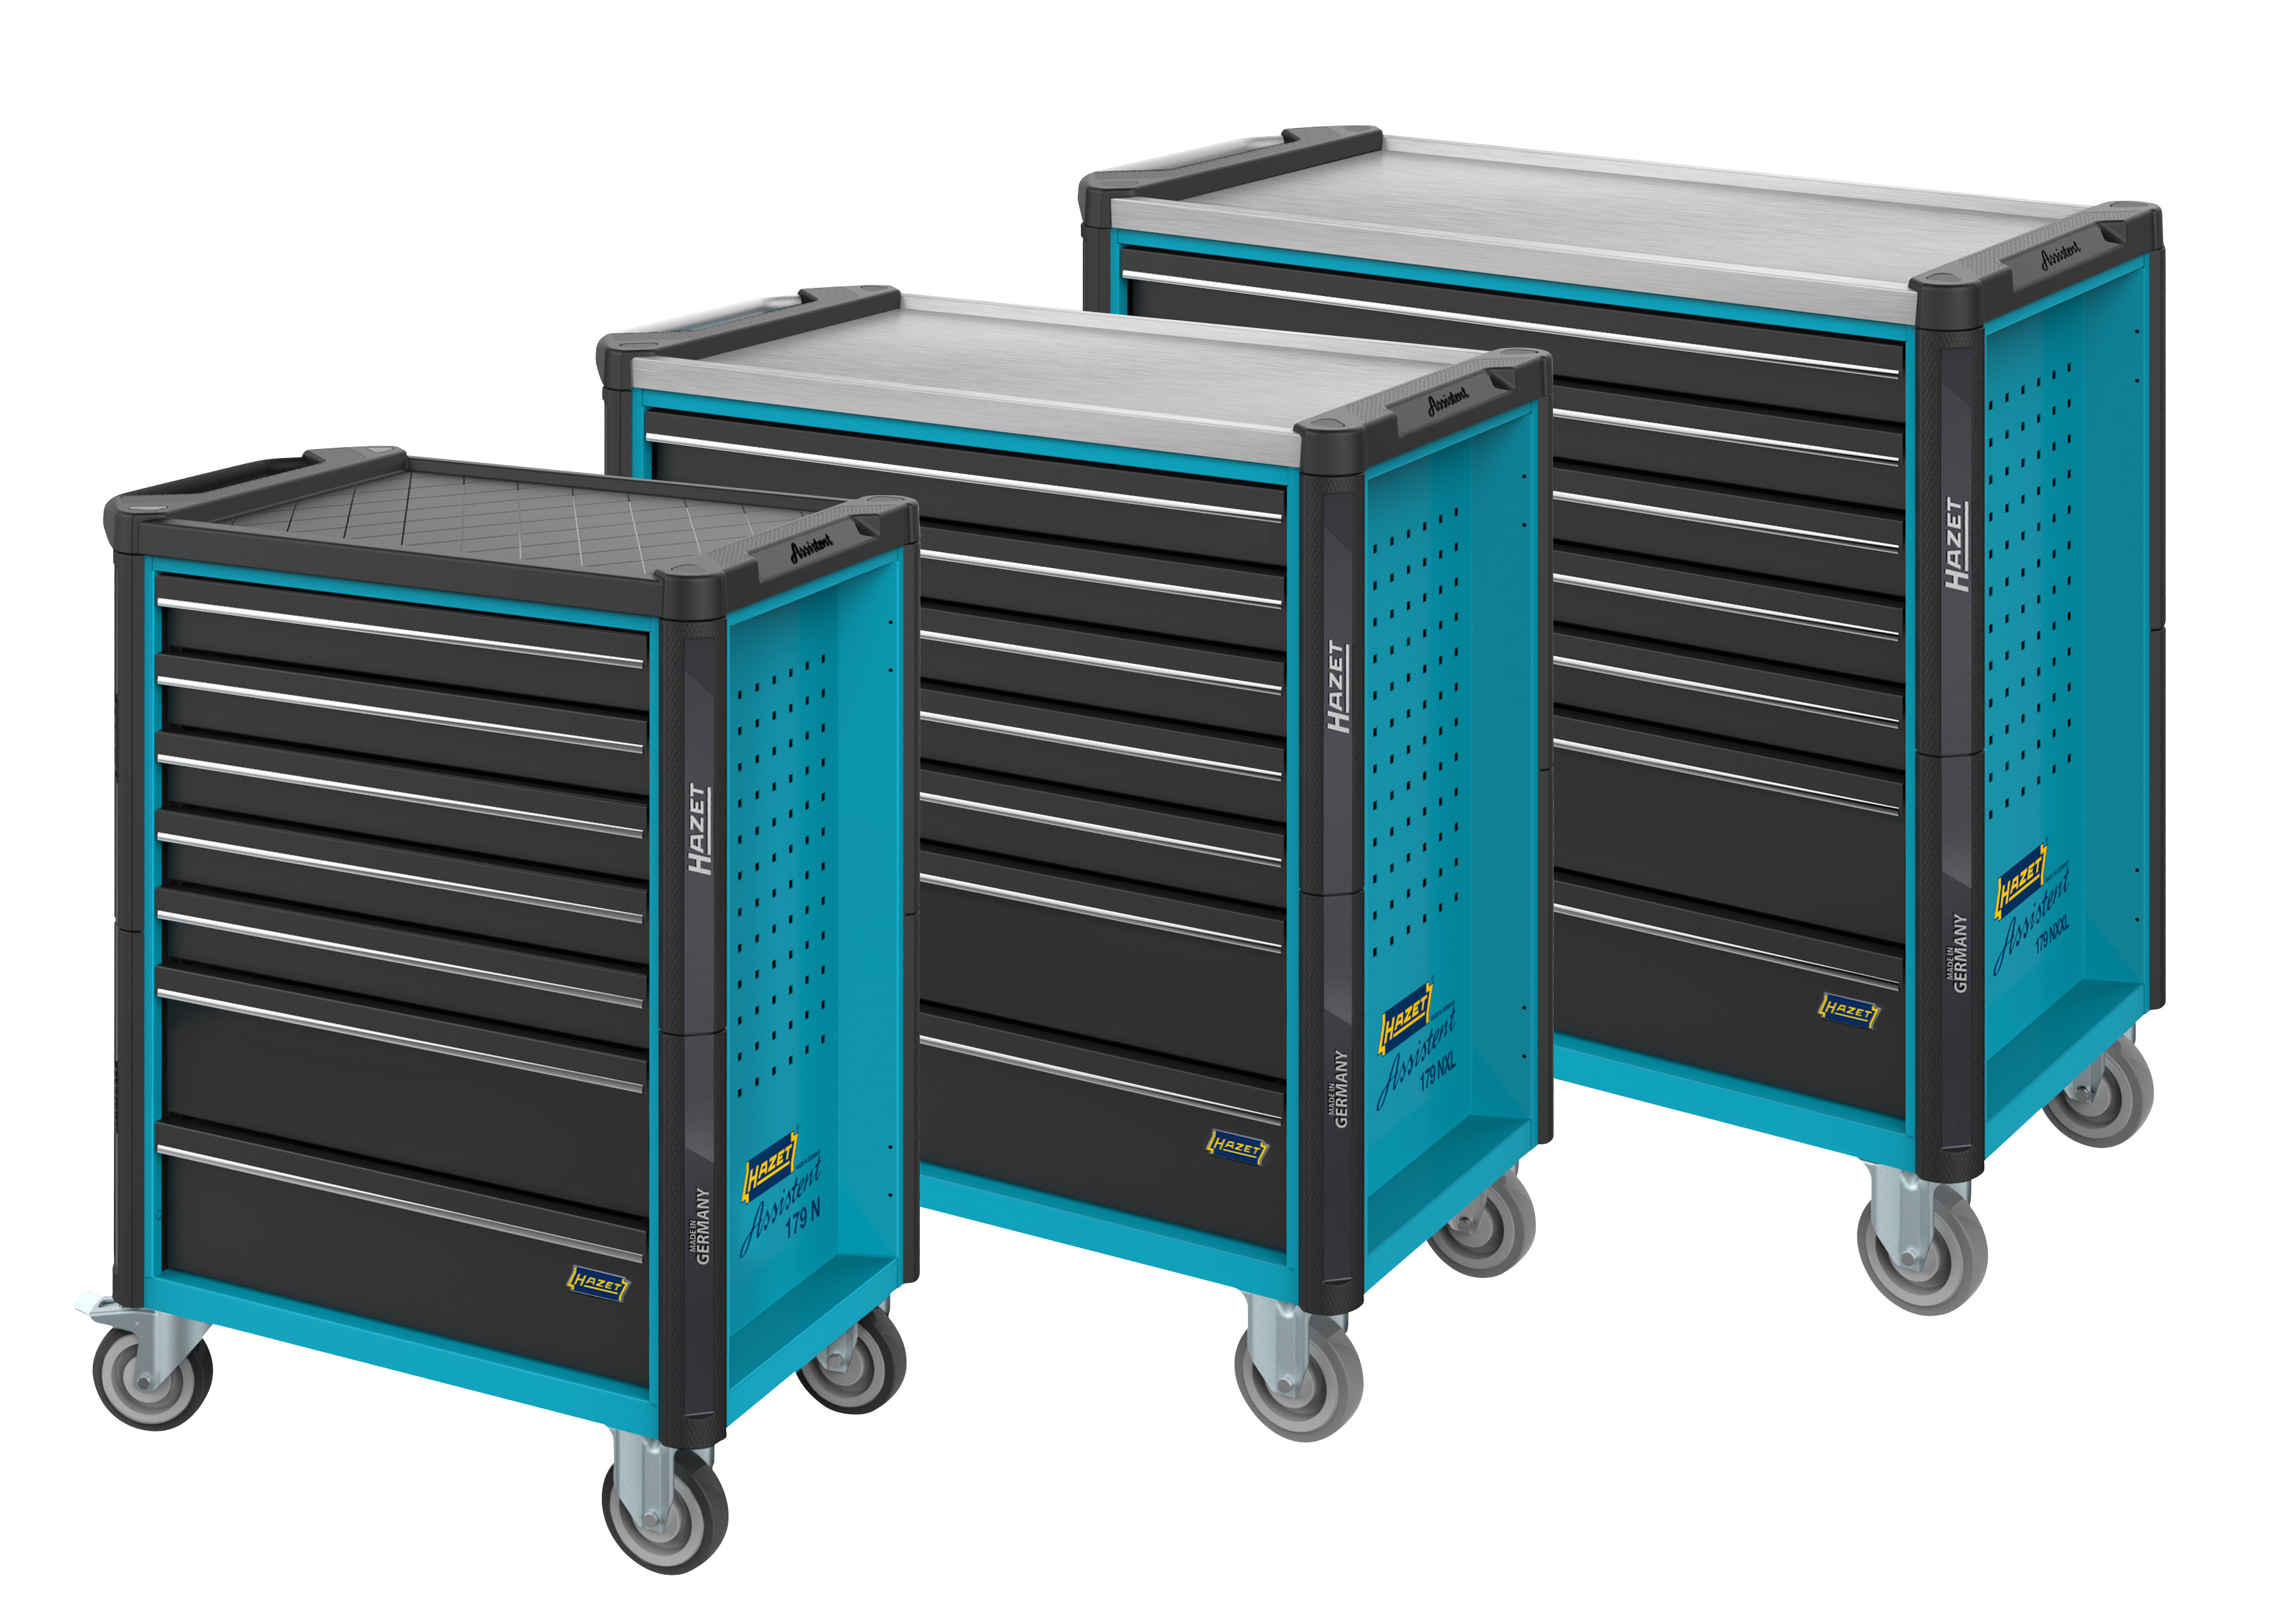 New generation of tool trolleys, Assistent 179 N